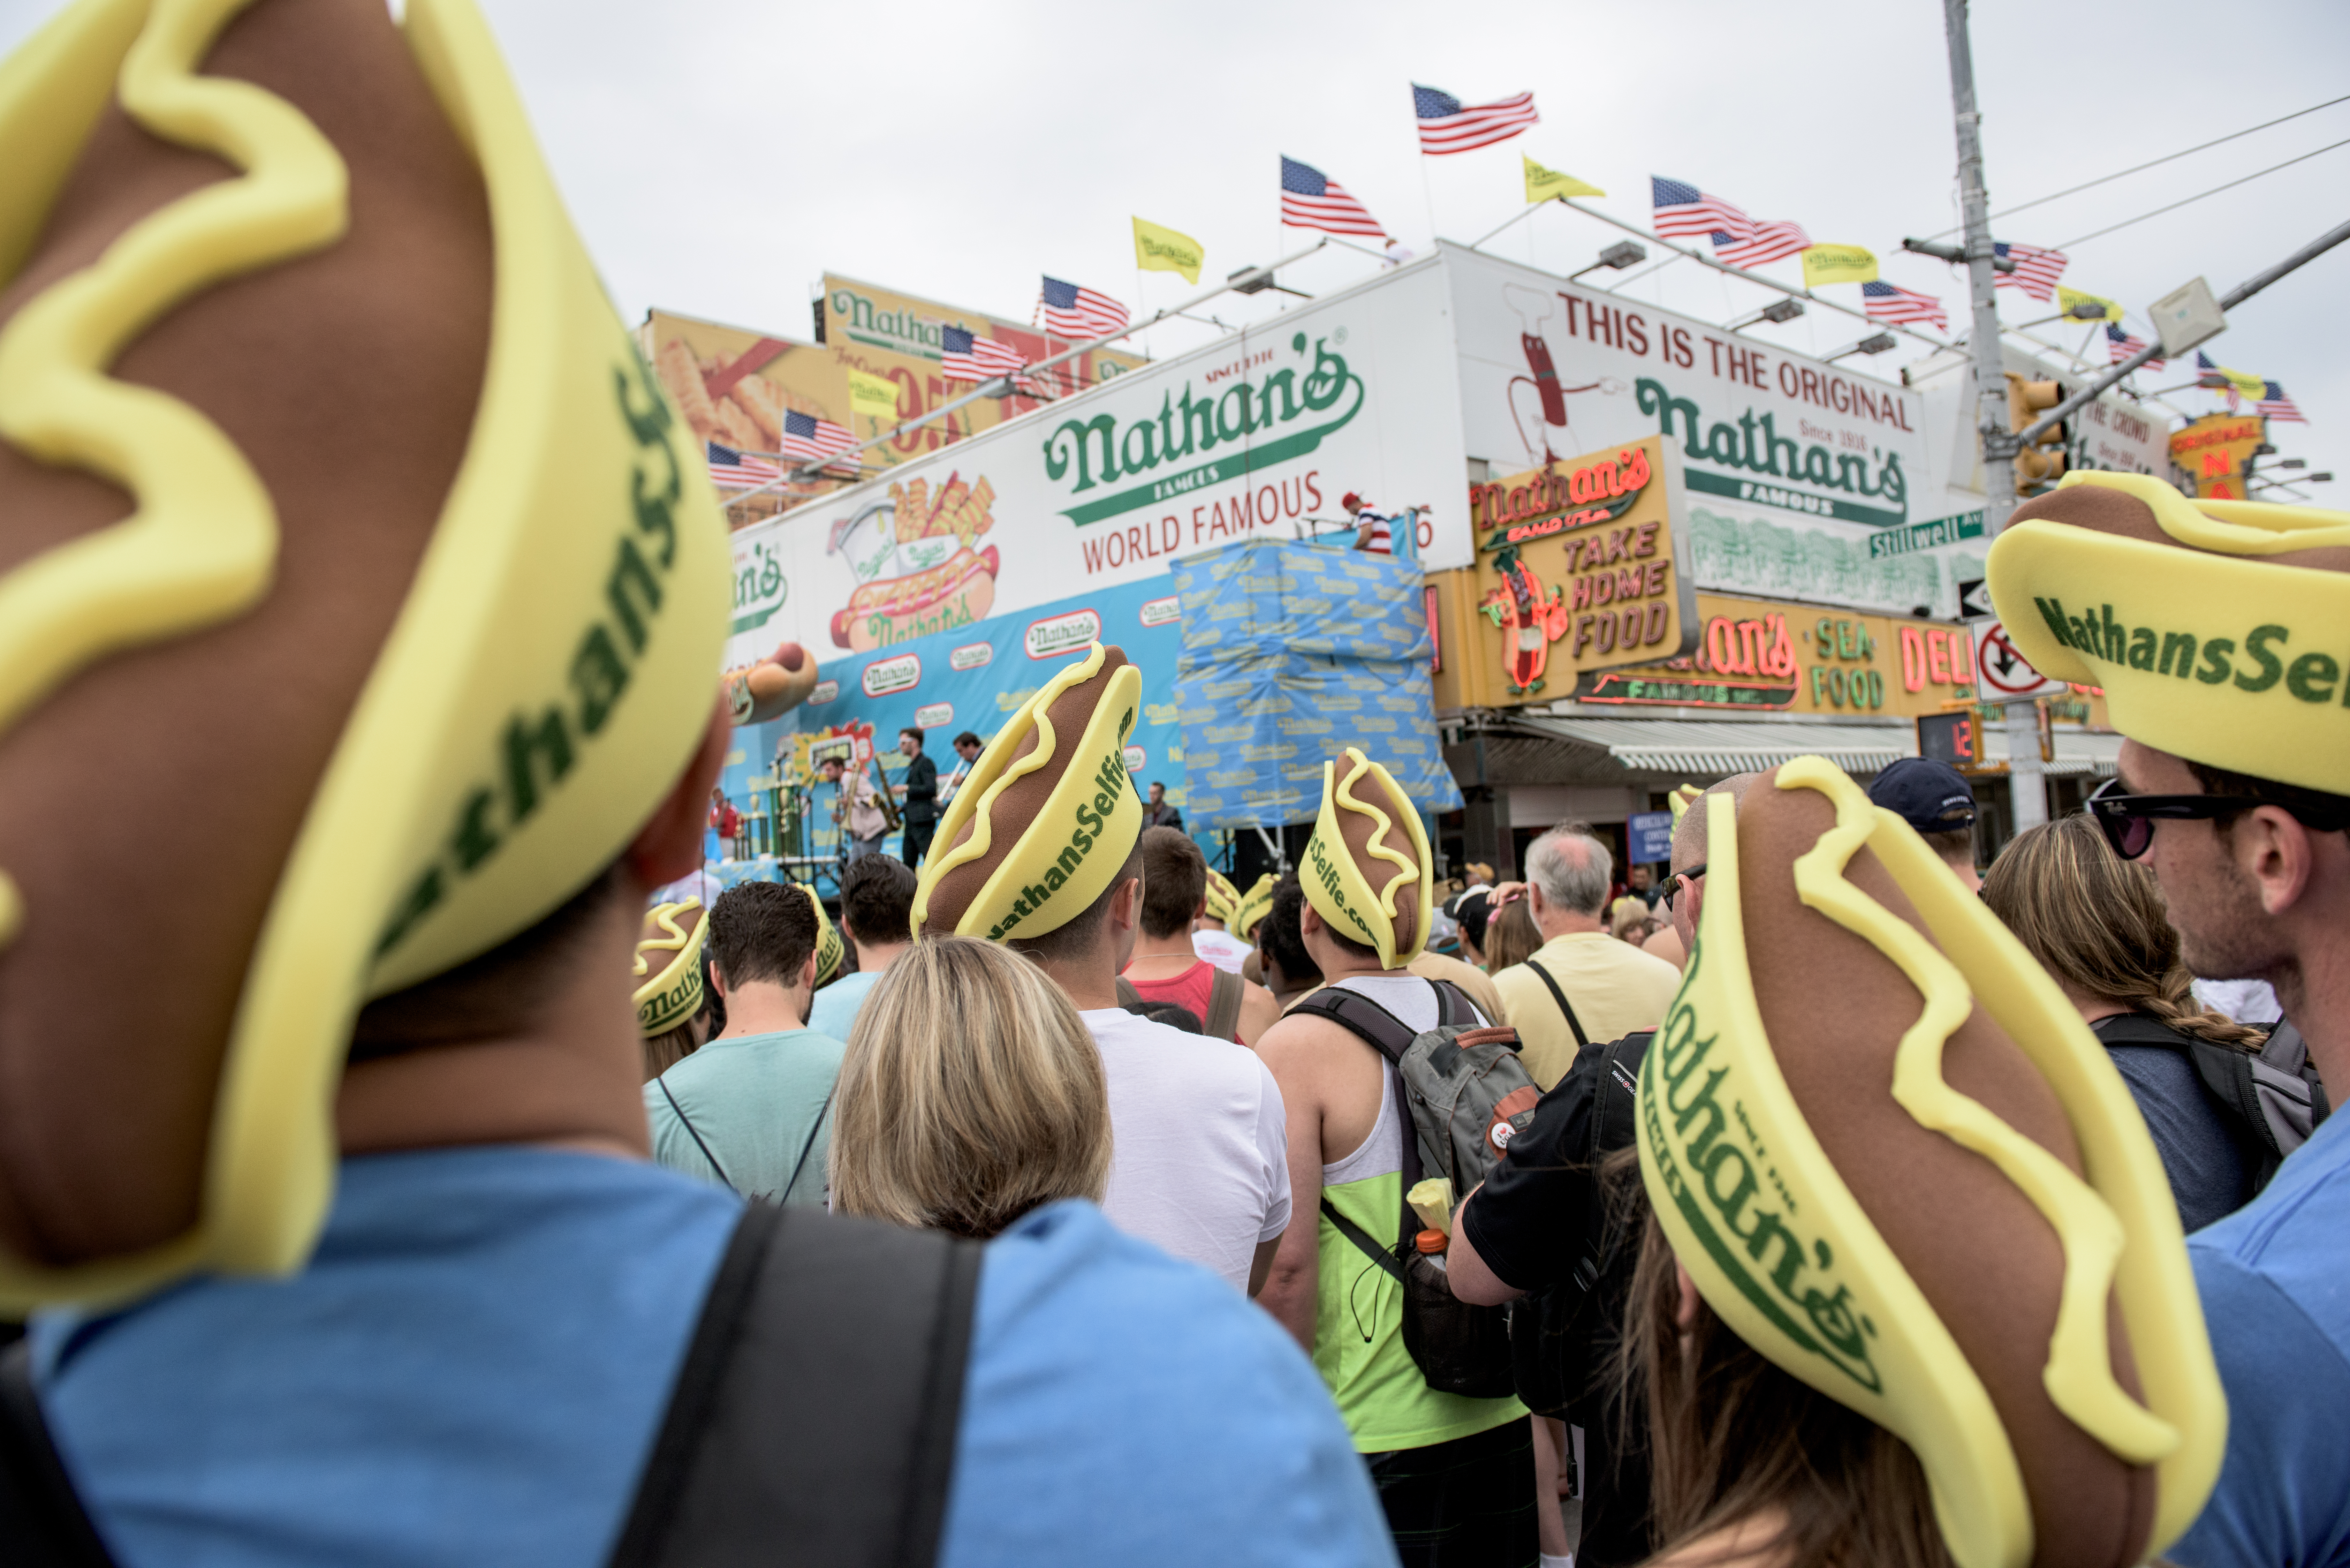 NEW YORK, NY - JULY 4: Fans gather at The Nathan's Famous Fourth of July International Hot Dog-Eating Contest in Coney Island, New York, on July 4, 2015. The contest is an annual Fourth of July tradition. (Photo by Andrew Renneisen/Getty Images)